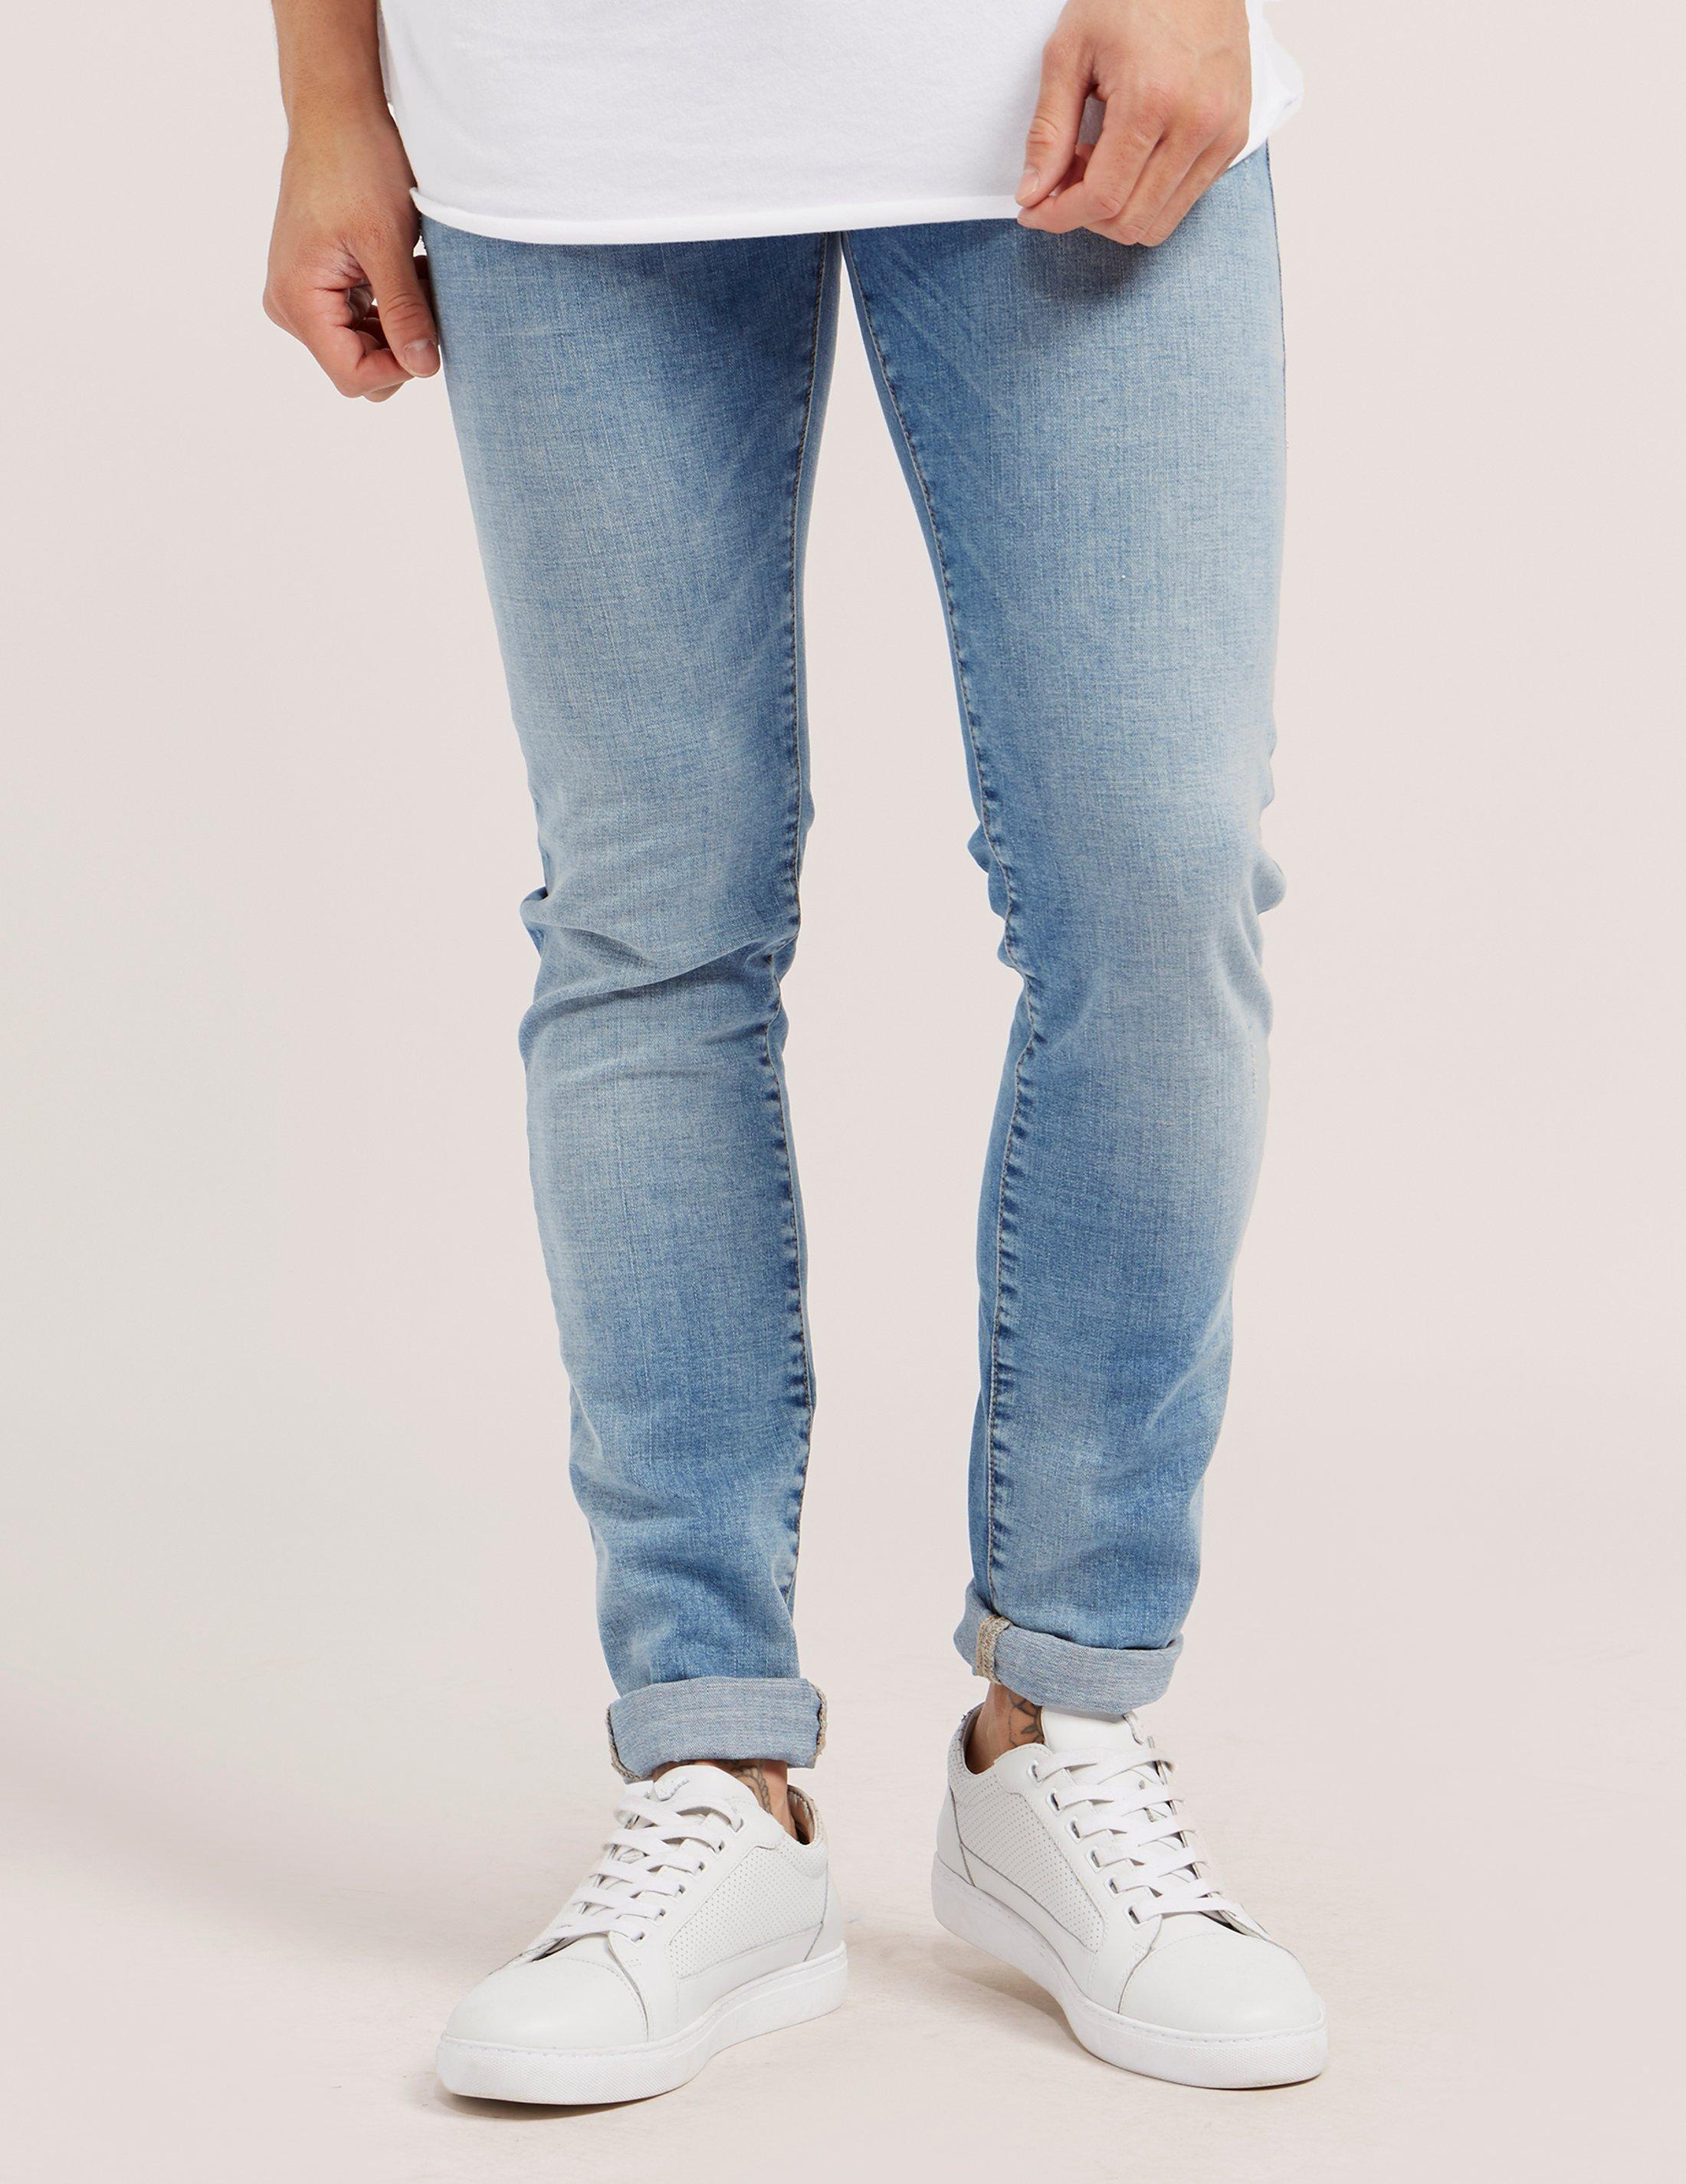 True Religion Denim Mens Tony Skinny Jeans Blue for Men